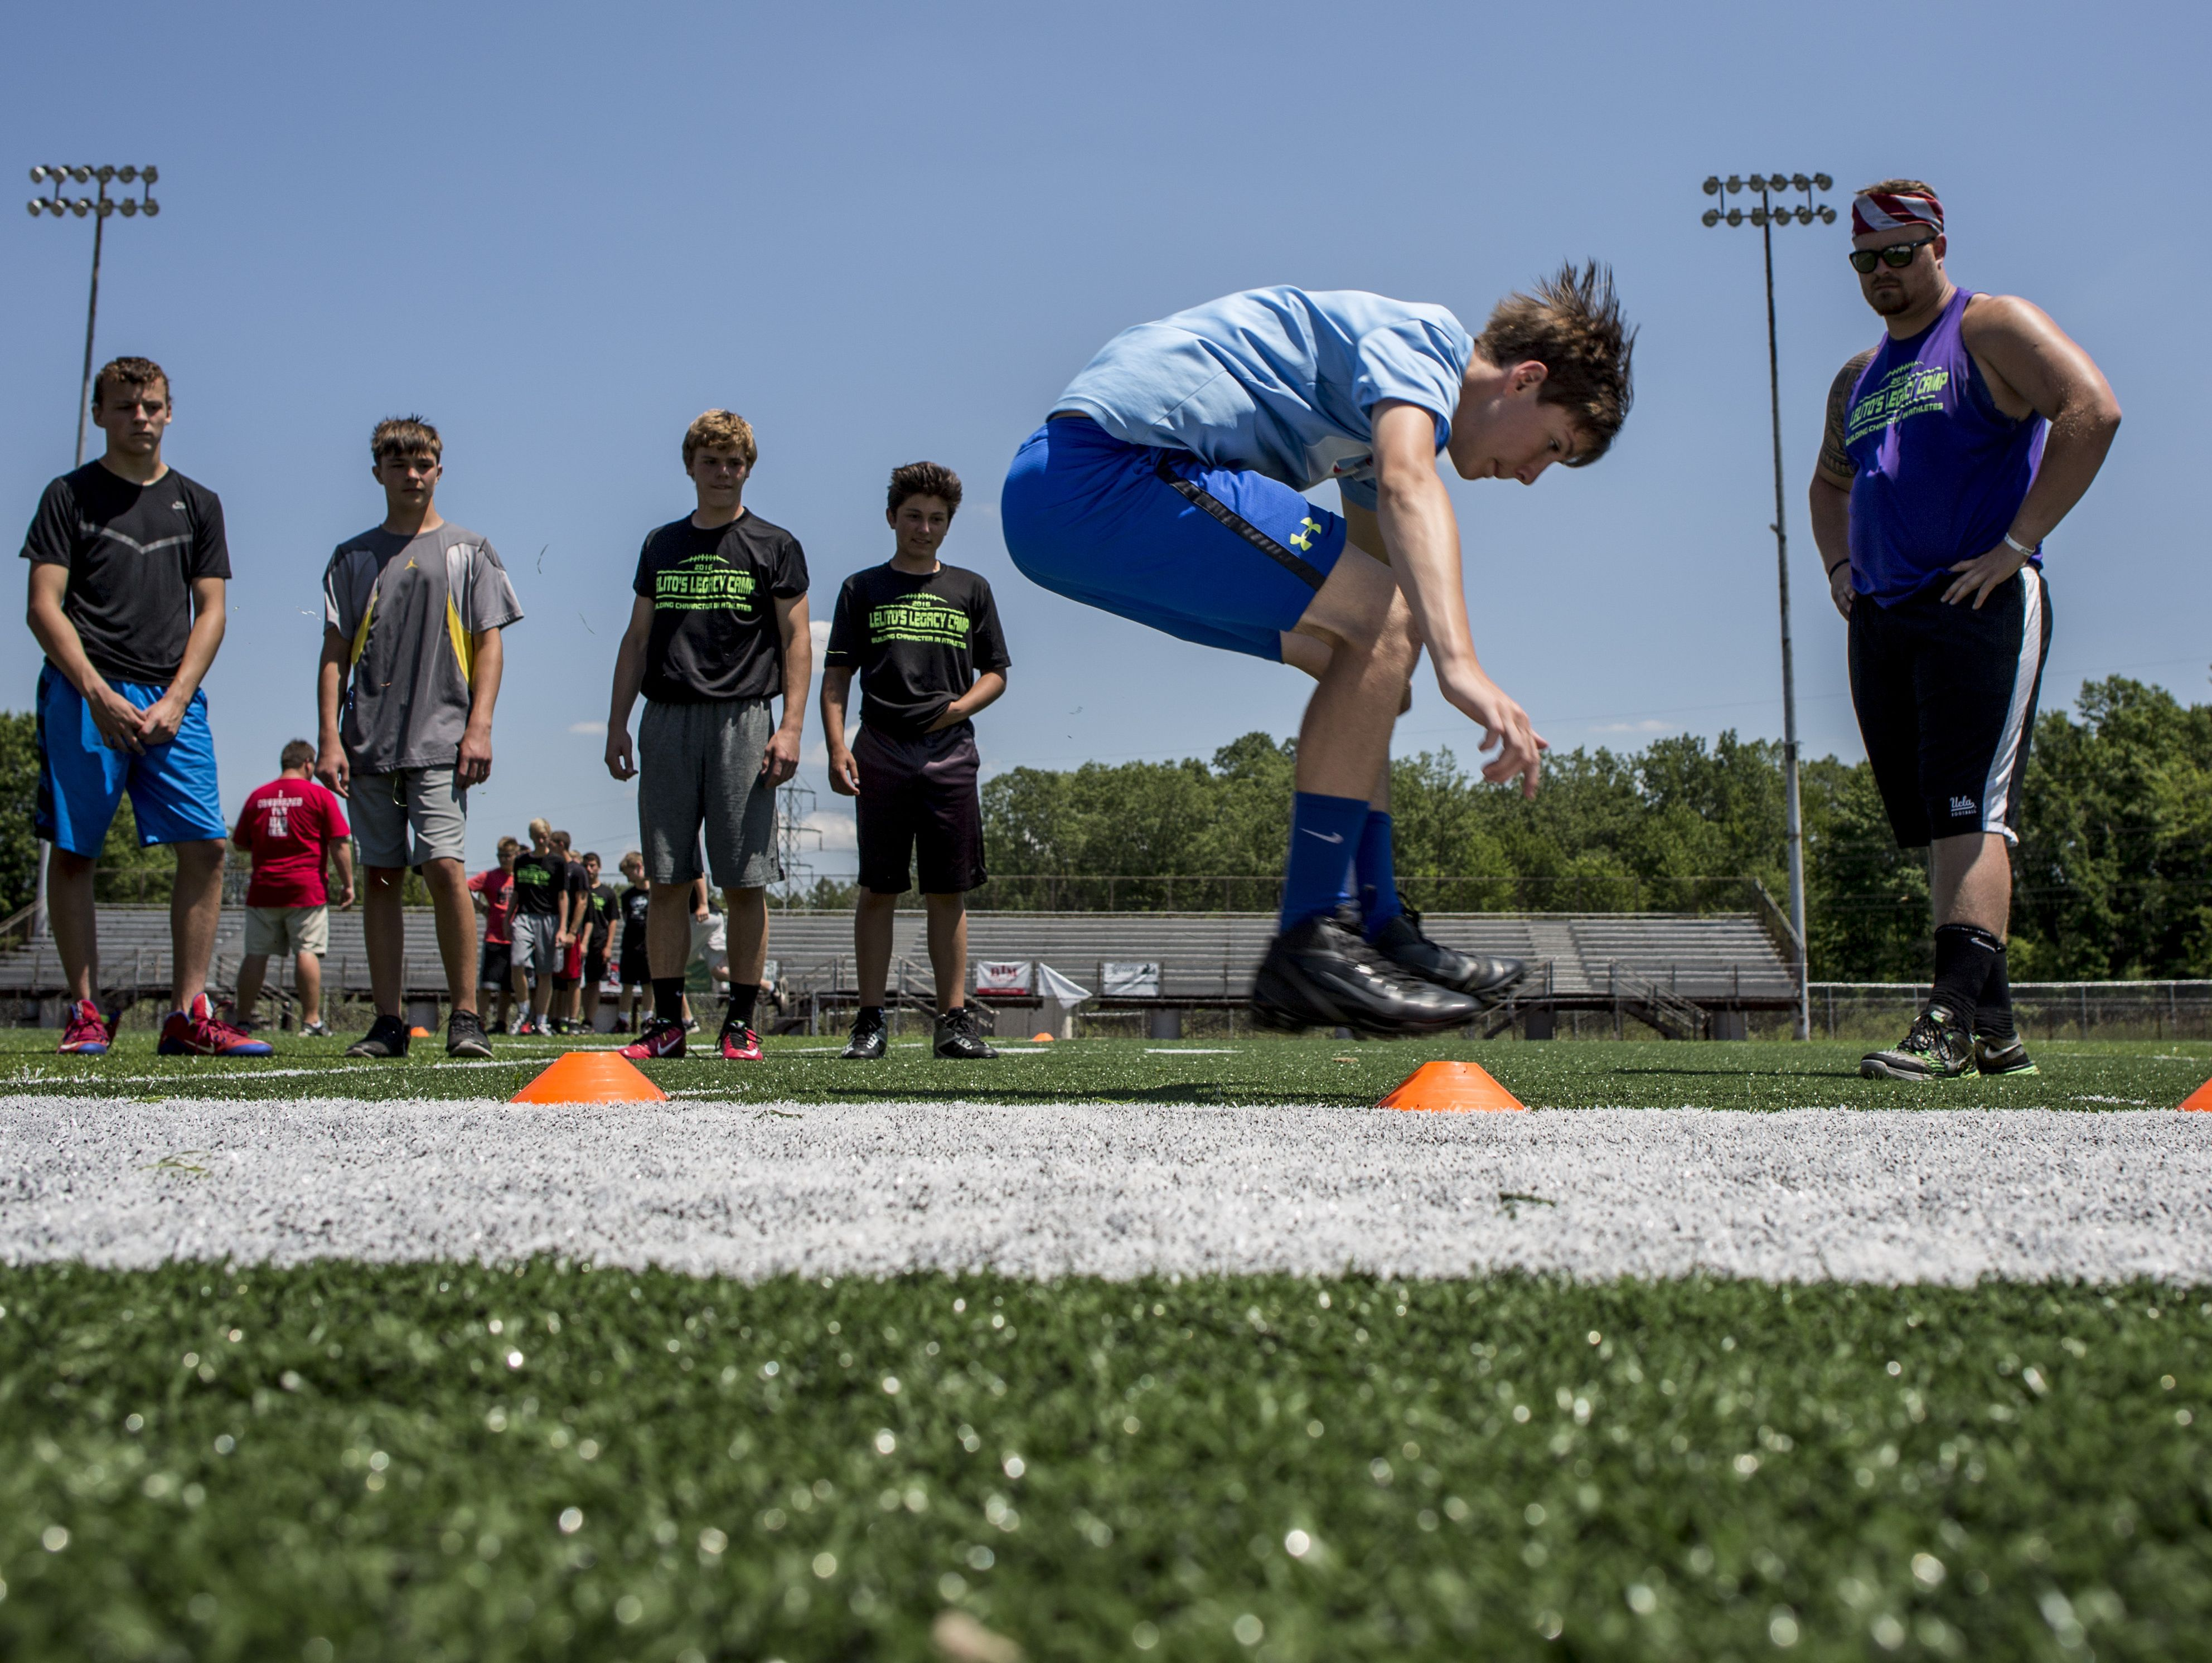 Will Nesbitt, 14, of St. Clair, does a standing long jump as others watch during Lelito's Legacy Camp Friday, June 24, 2016 at the East China Stadium.